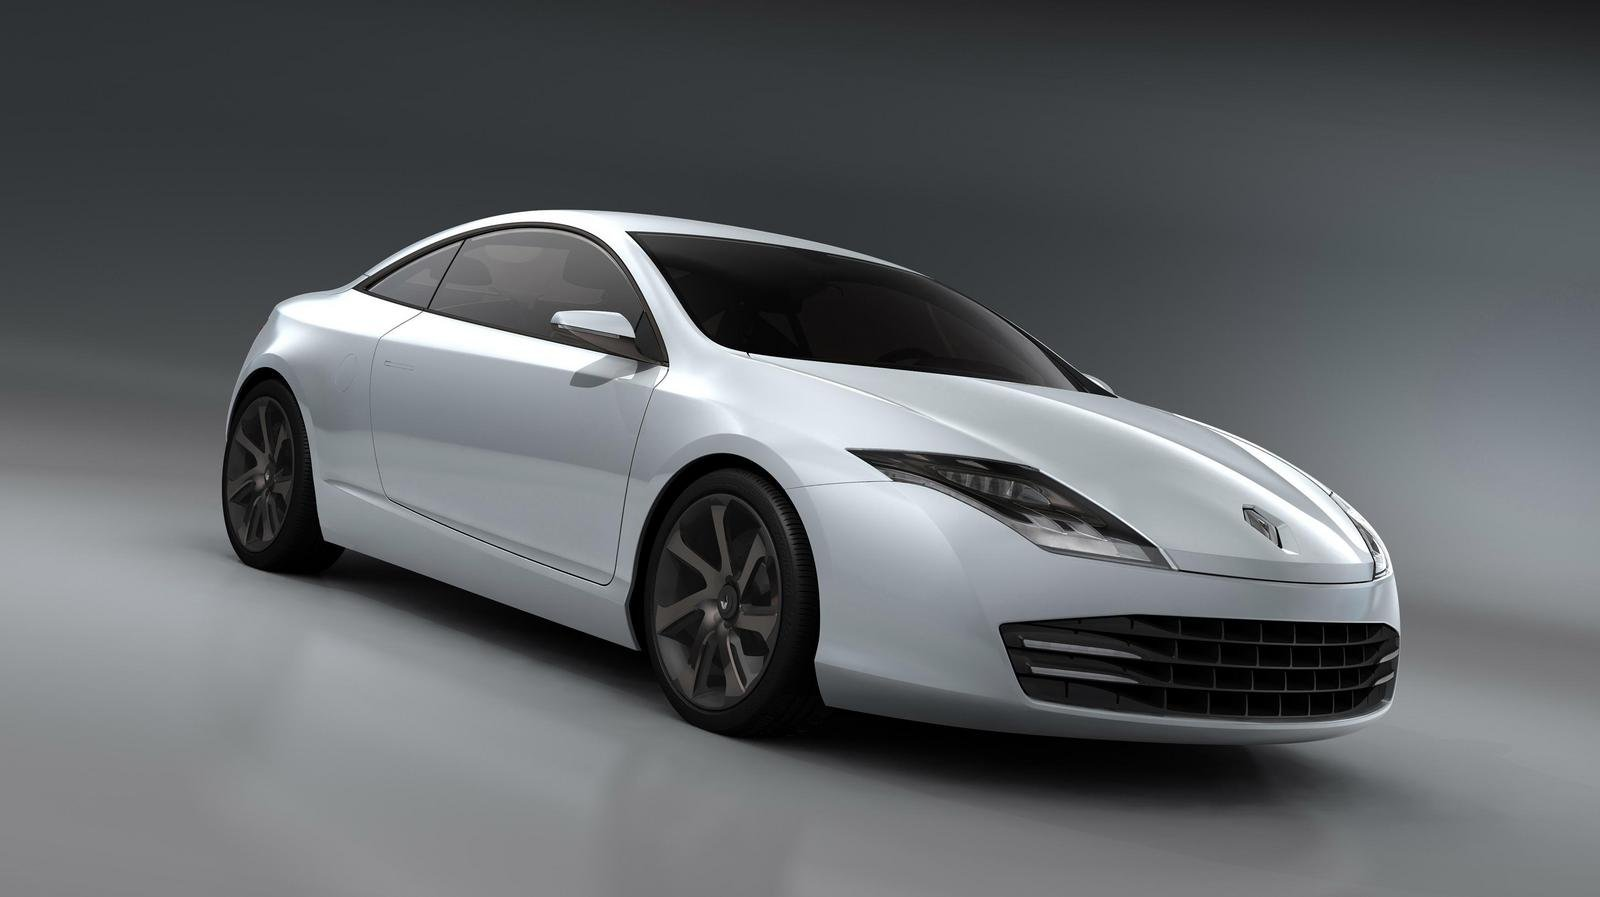 2008 renault laguna coupe review top speed. Black Bedroom Furniture Sets. Home Design Ideas